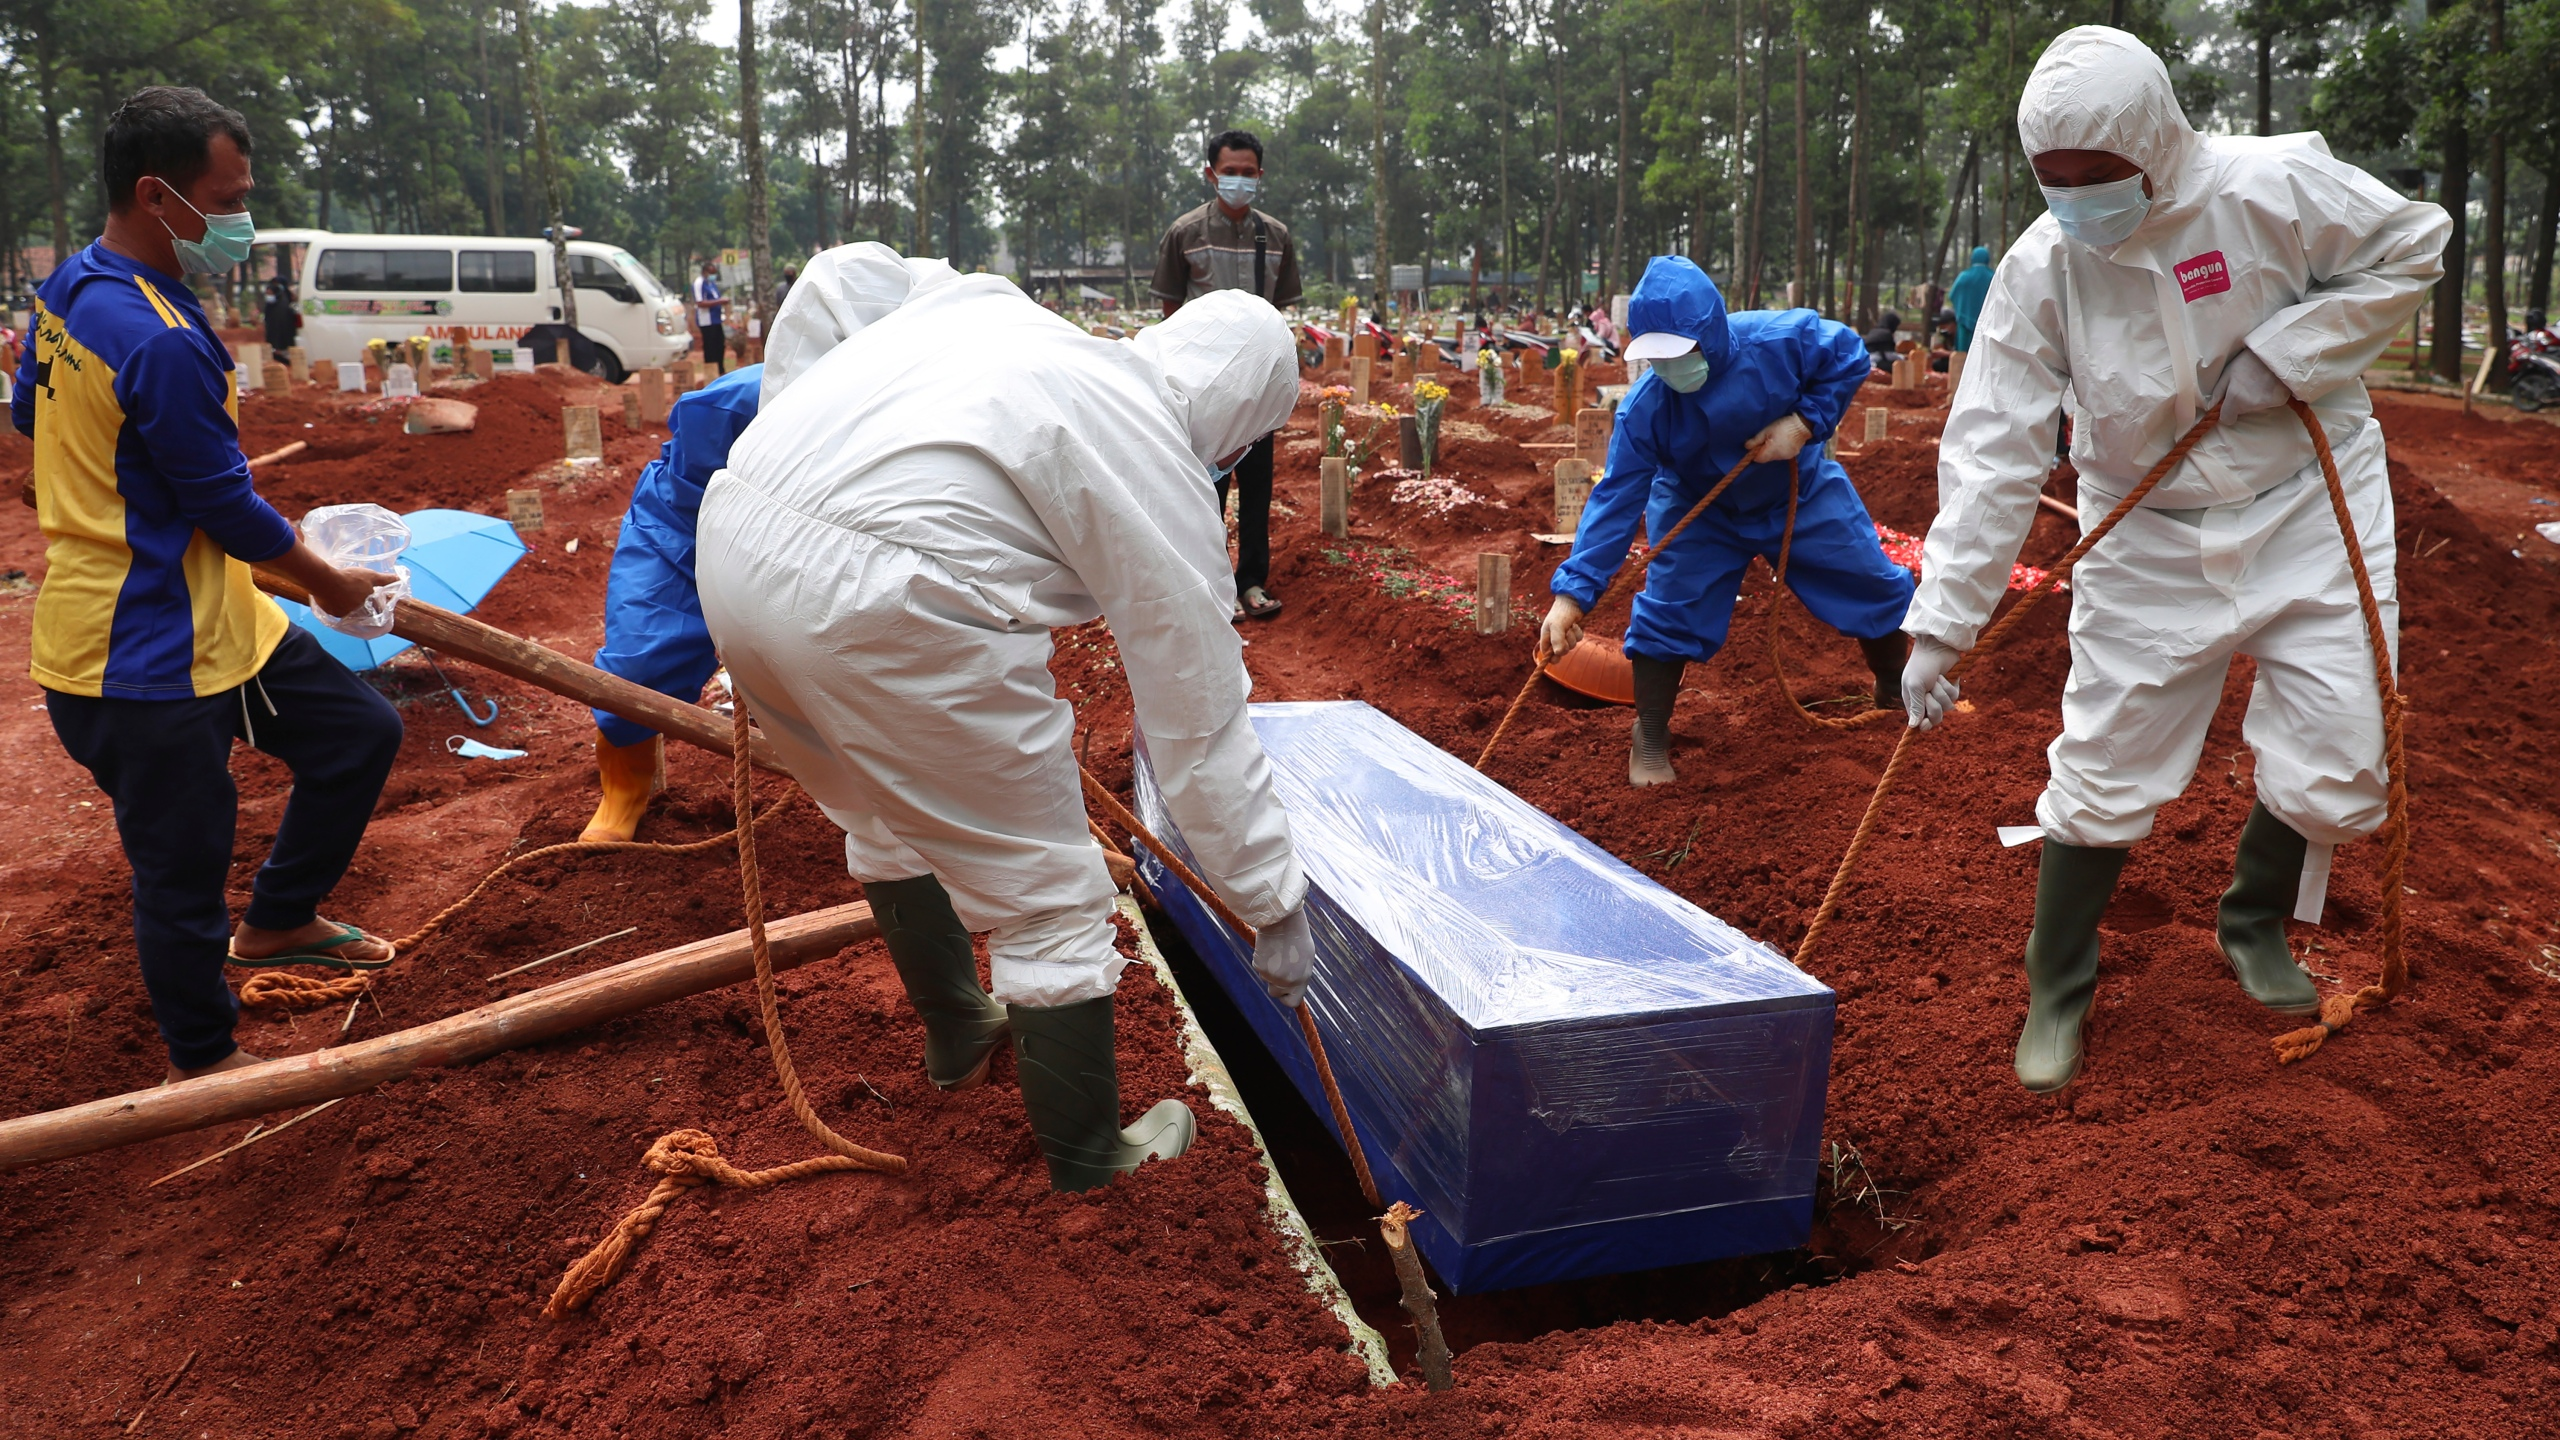 Workers in protective gear lower a coffin of a COVID-19 victim to a grave for burial at the Cipenjo Cemetery in Bogor, West Java, Indonesia on July 14, 2021. (Achmad Ibrahim/Associated Press)